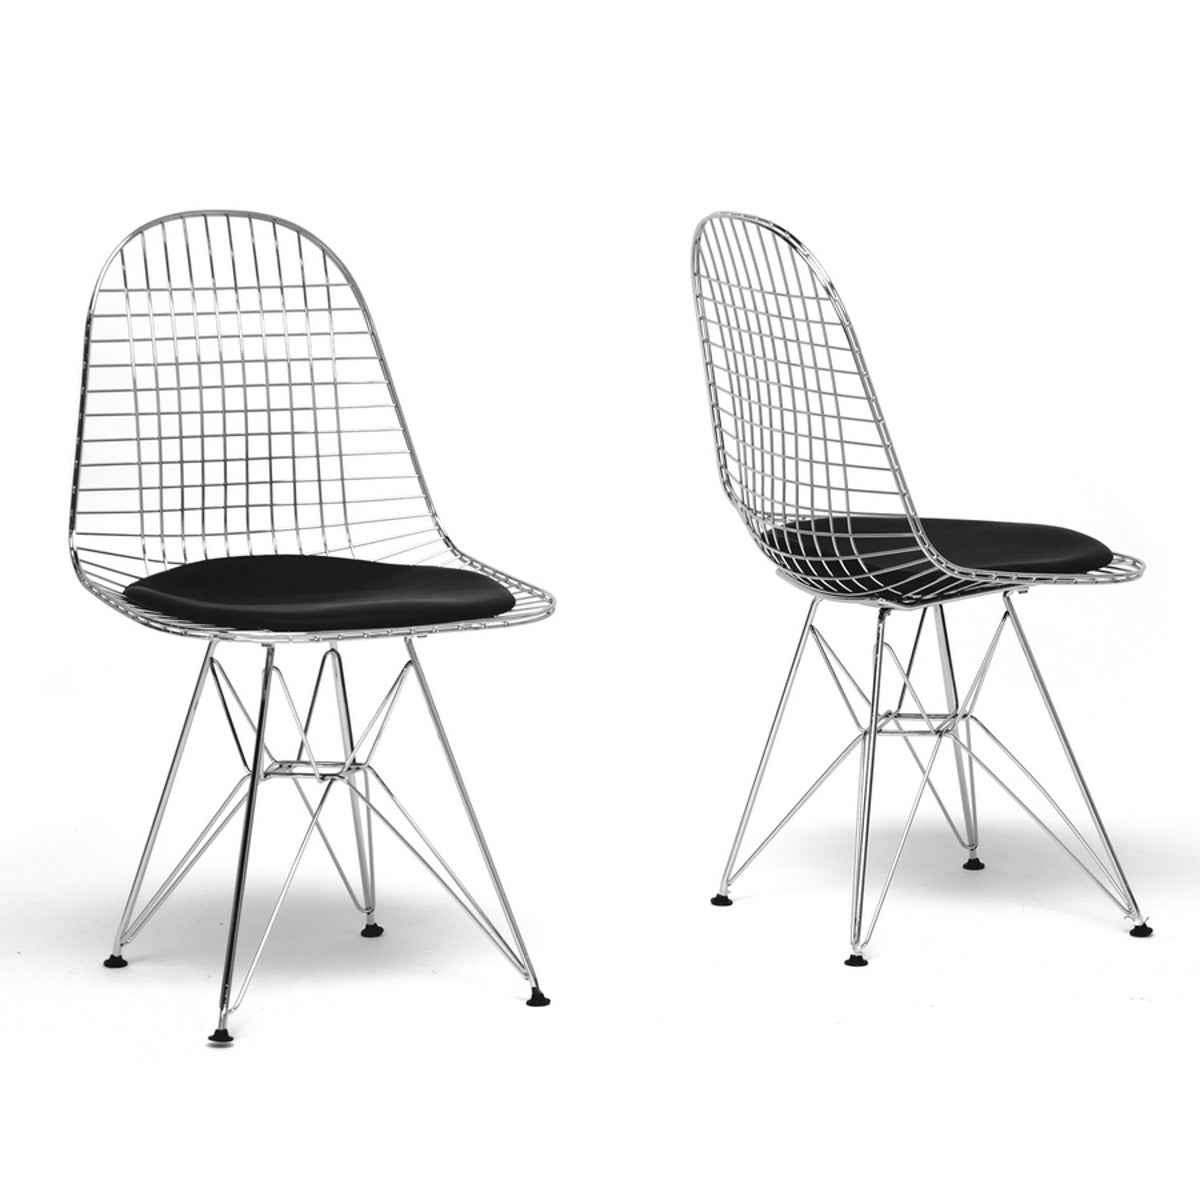 Baxton Studio Avery Mid-Century Modern Wire Chair with Black Cushion (Set of 2) Baxton Studio-dining chair-Minimal And Modern - 1